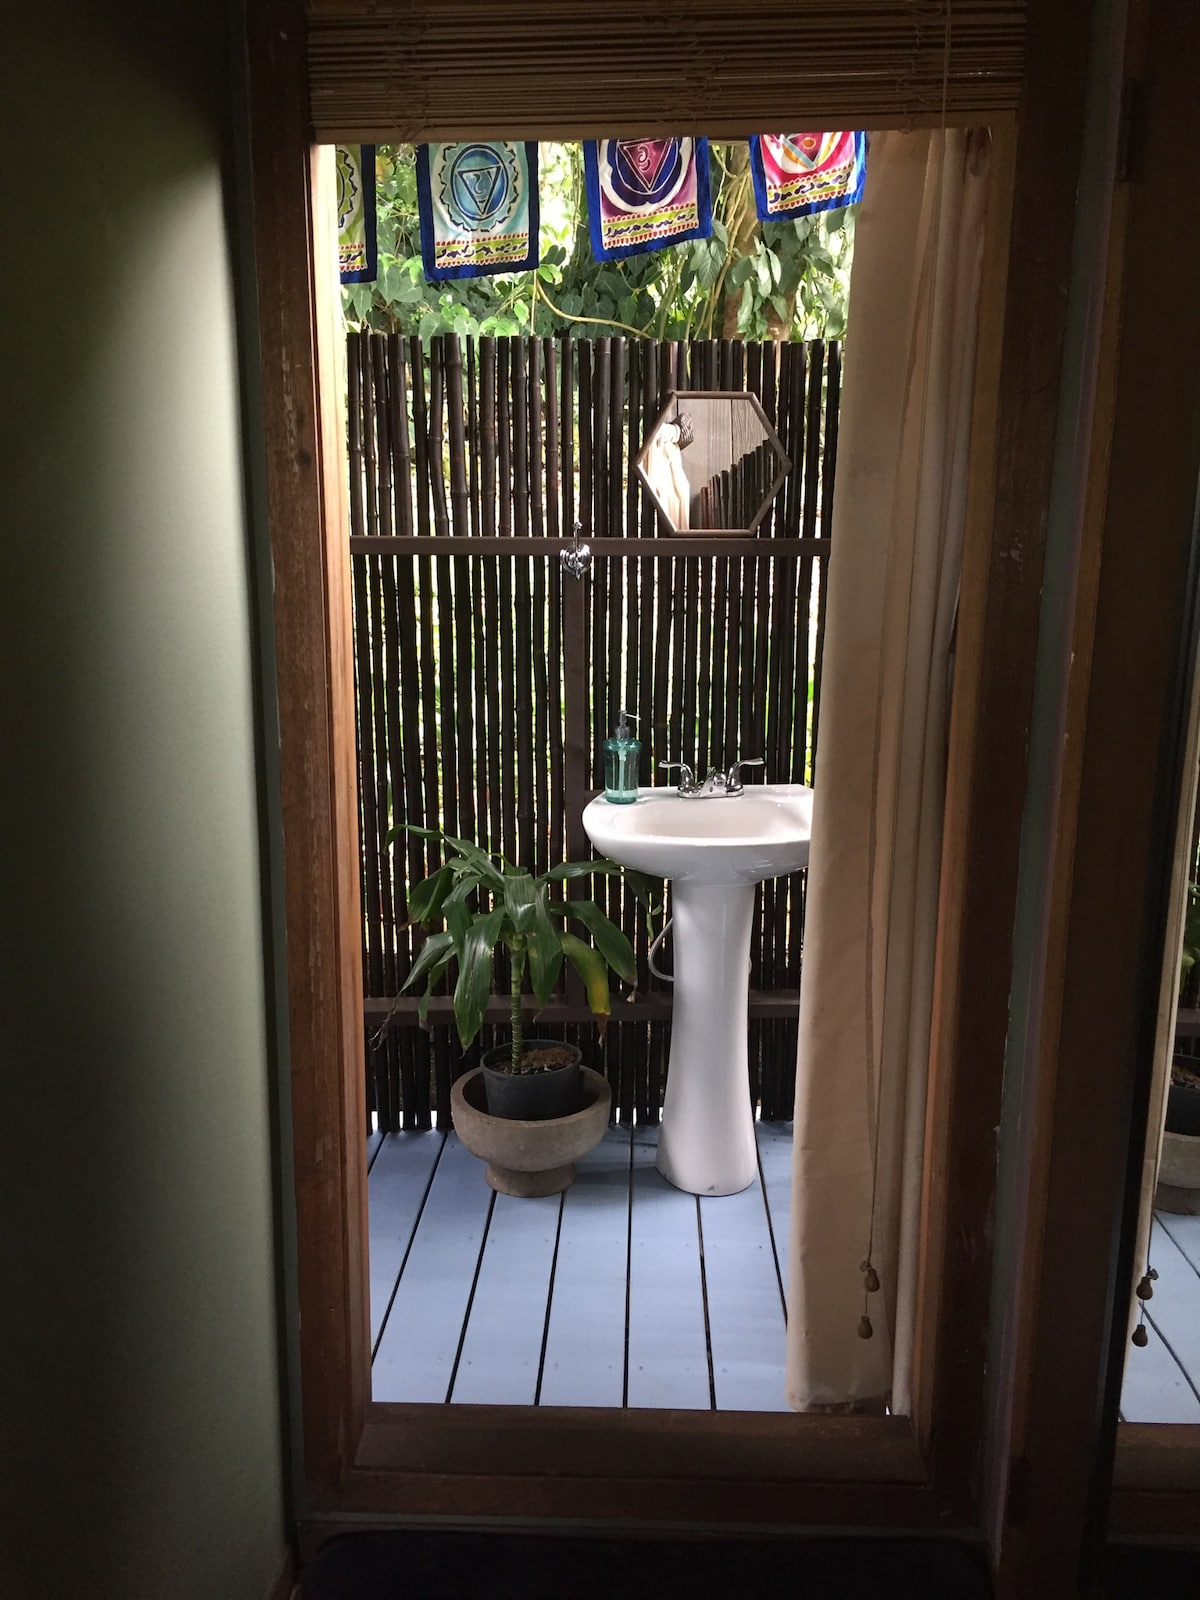 Step out into your outdoor bathroom.